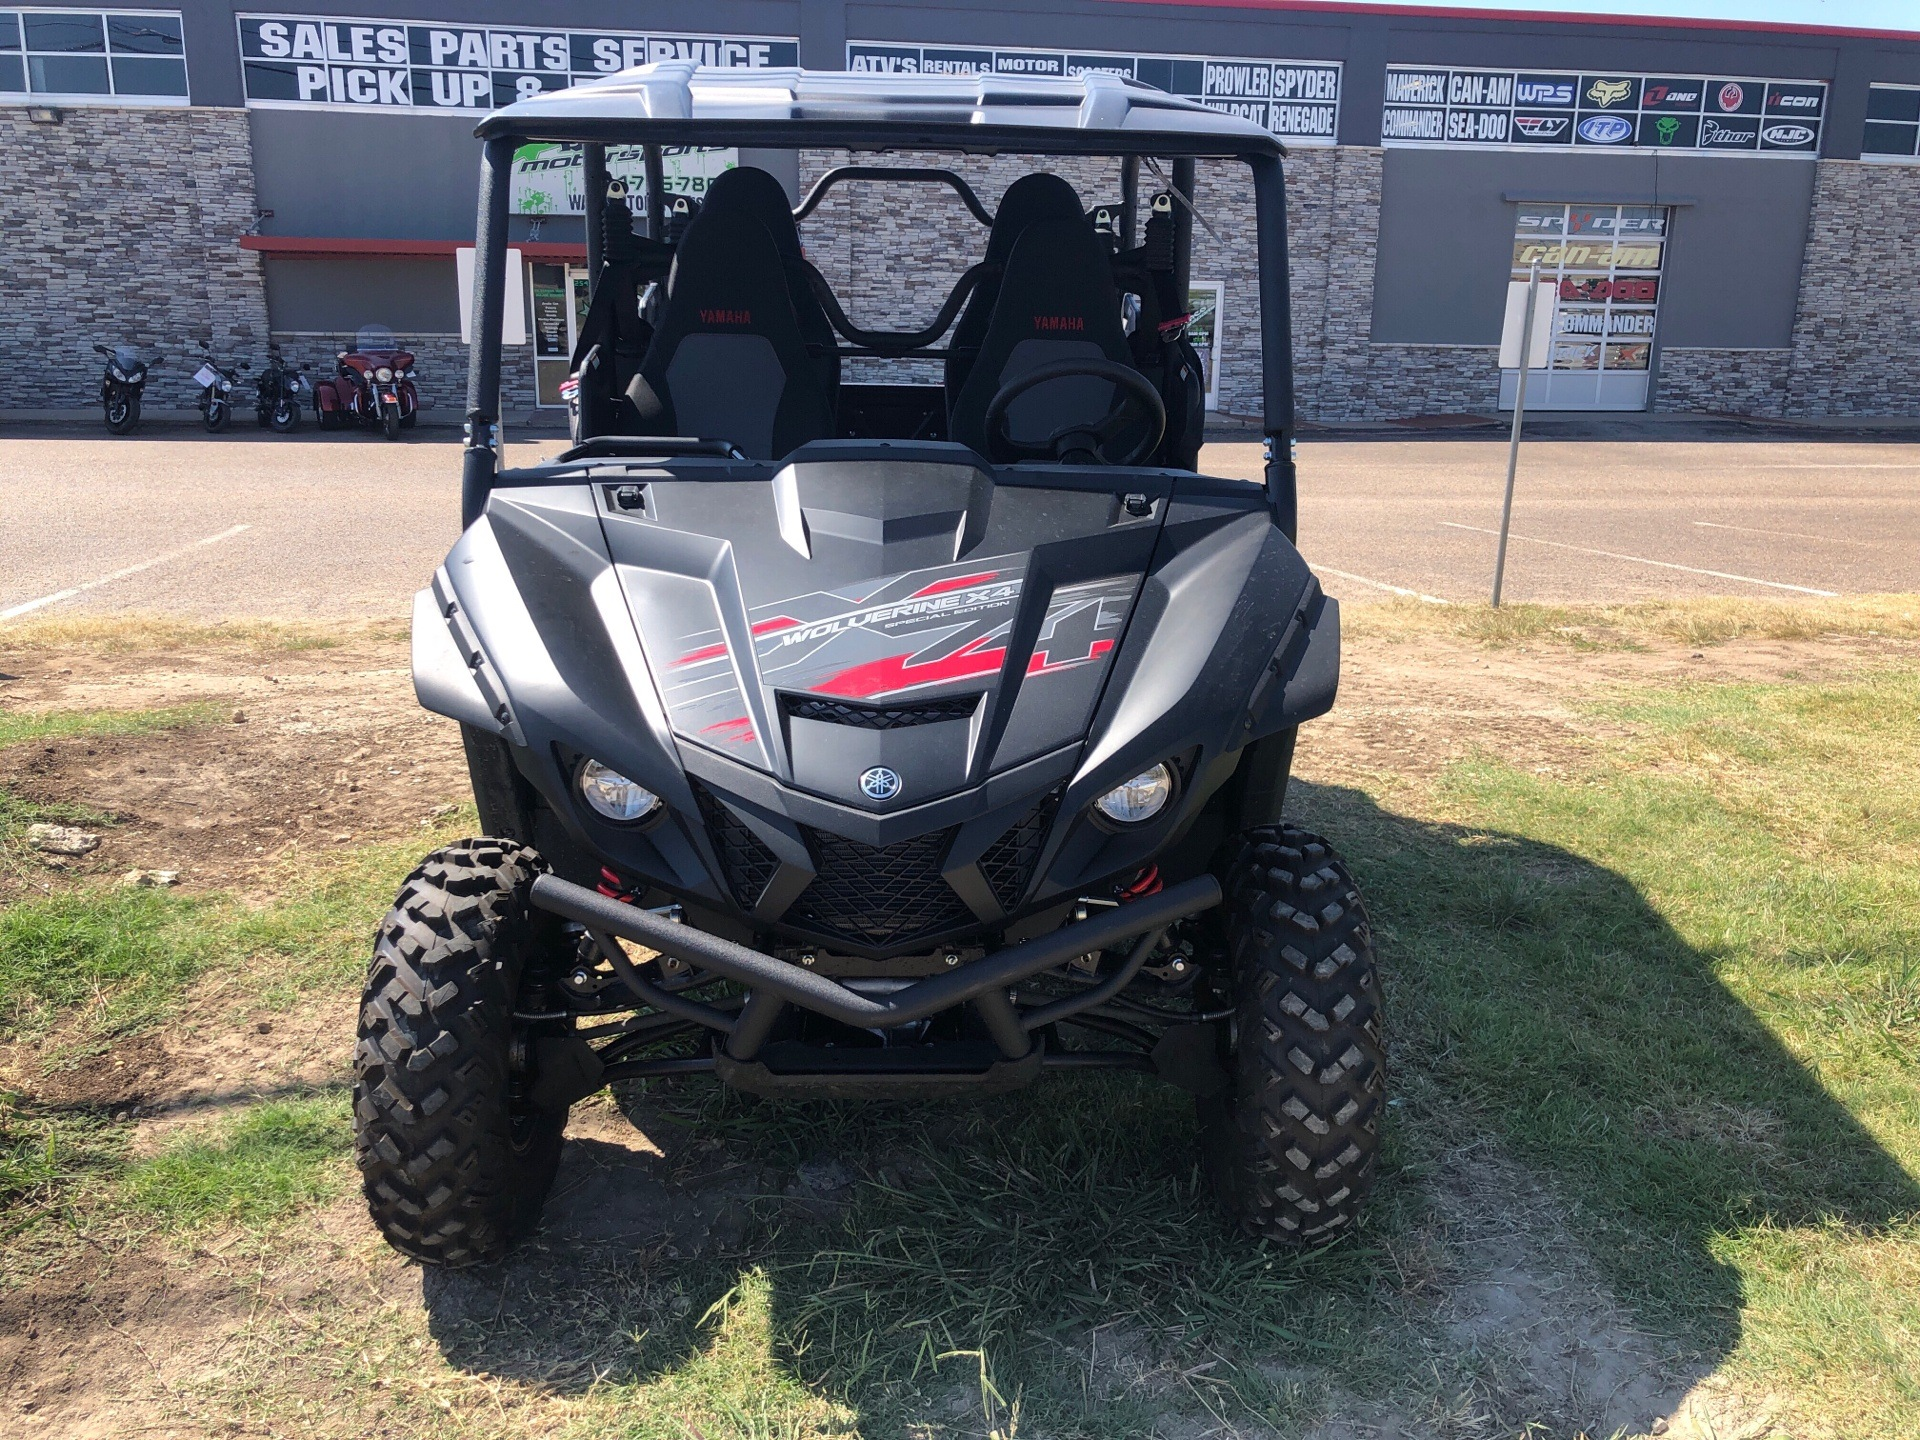 2019 YAMAHA yxf85wpskb in Waco, Texas - Photo 2